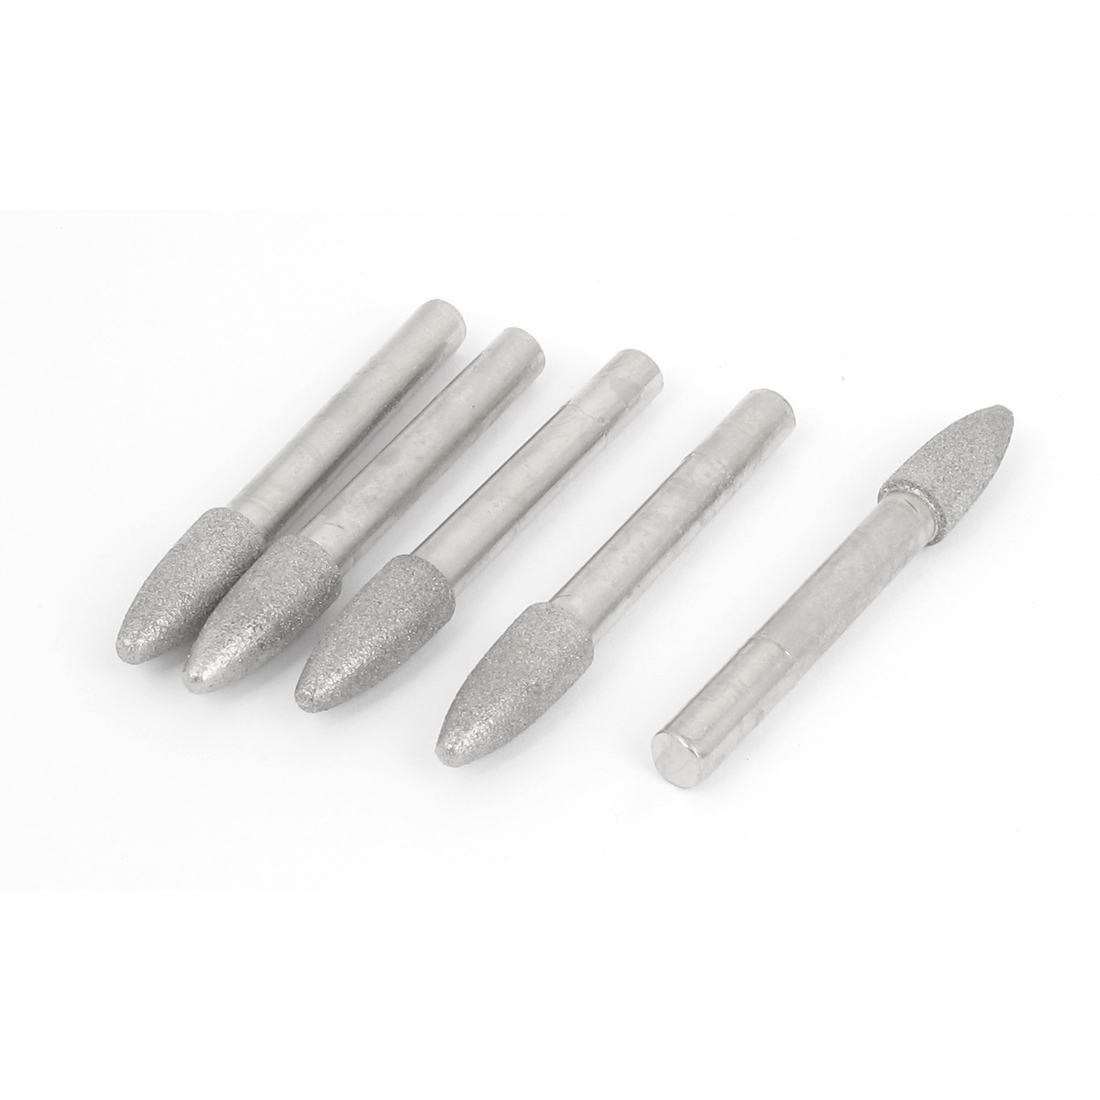 6mm Shank 8mm Tapered Head Dia Grinding Diamond Mounted Point 5pcs